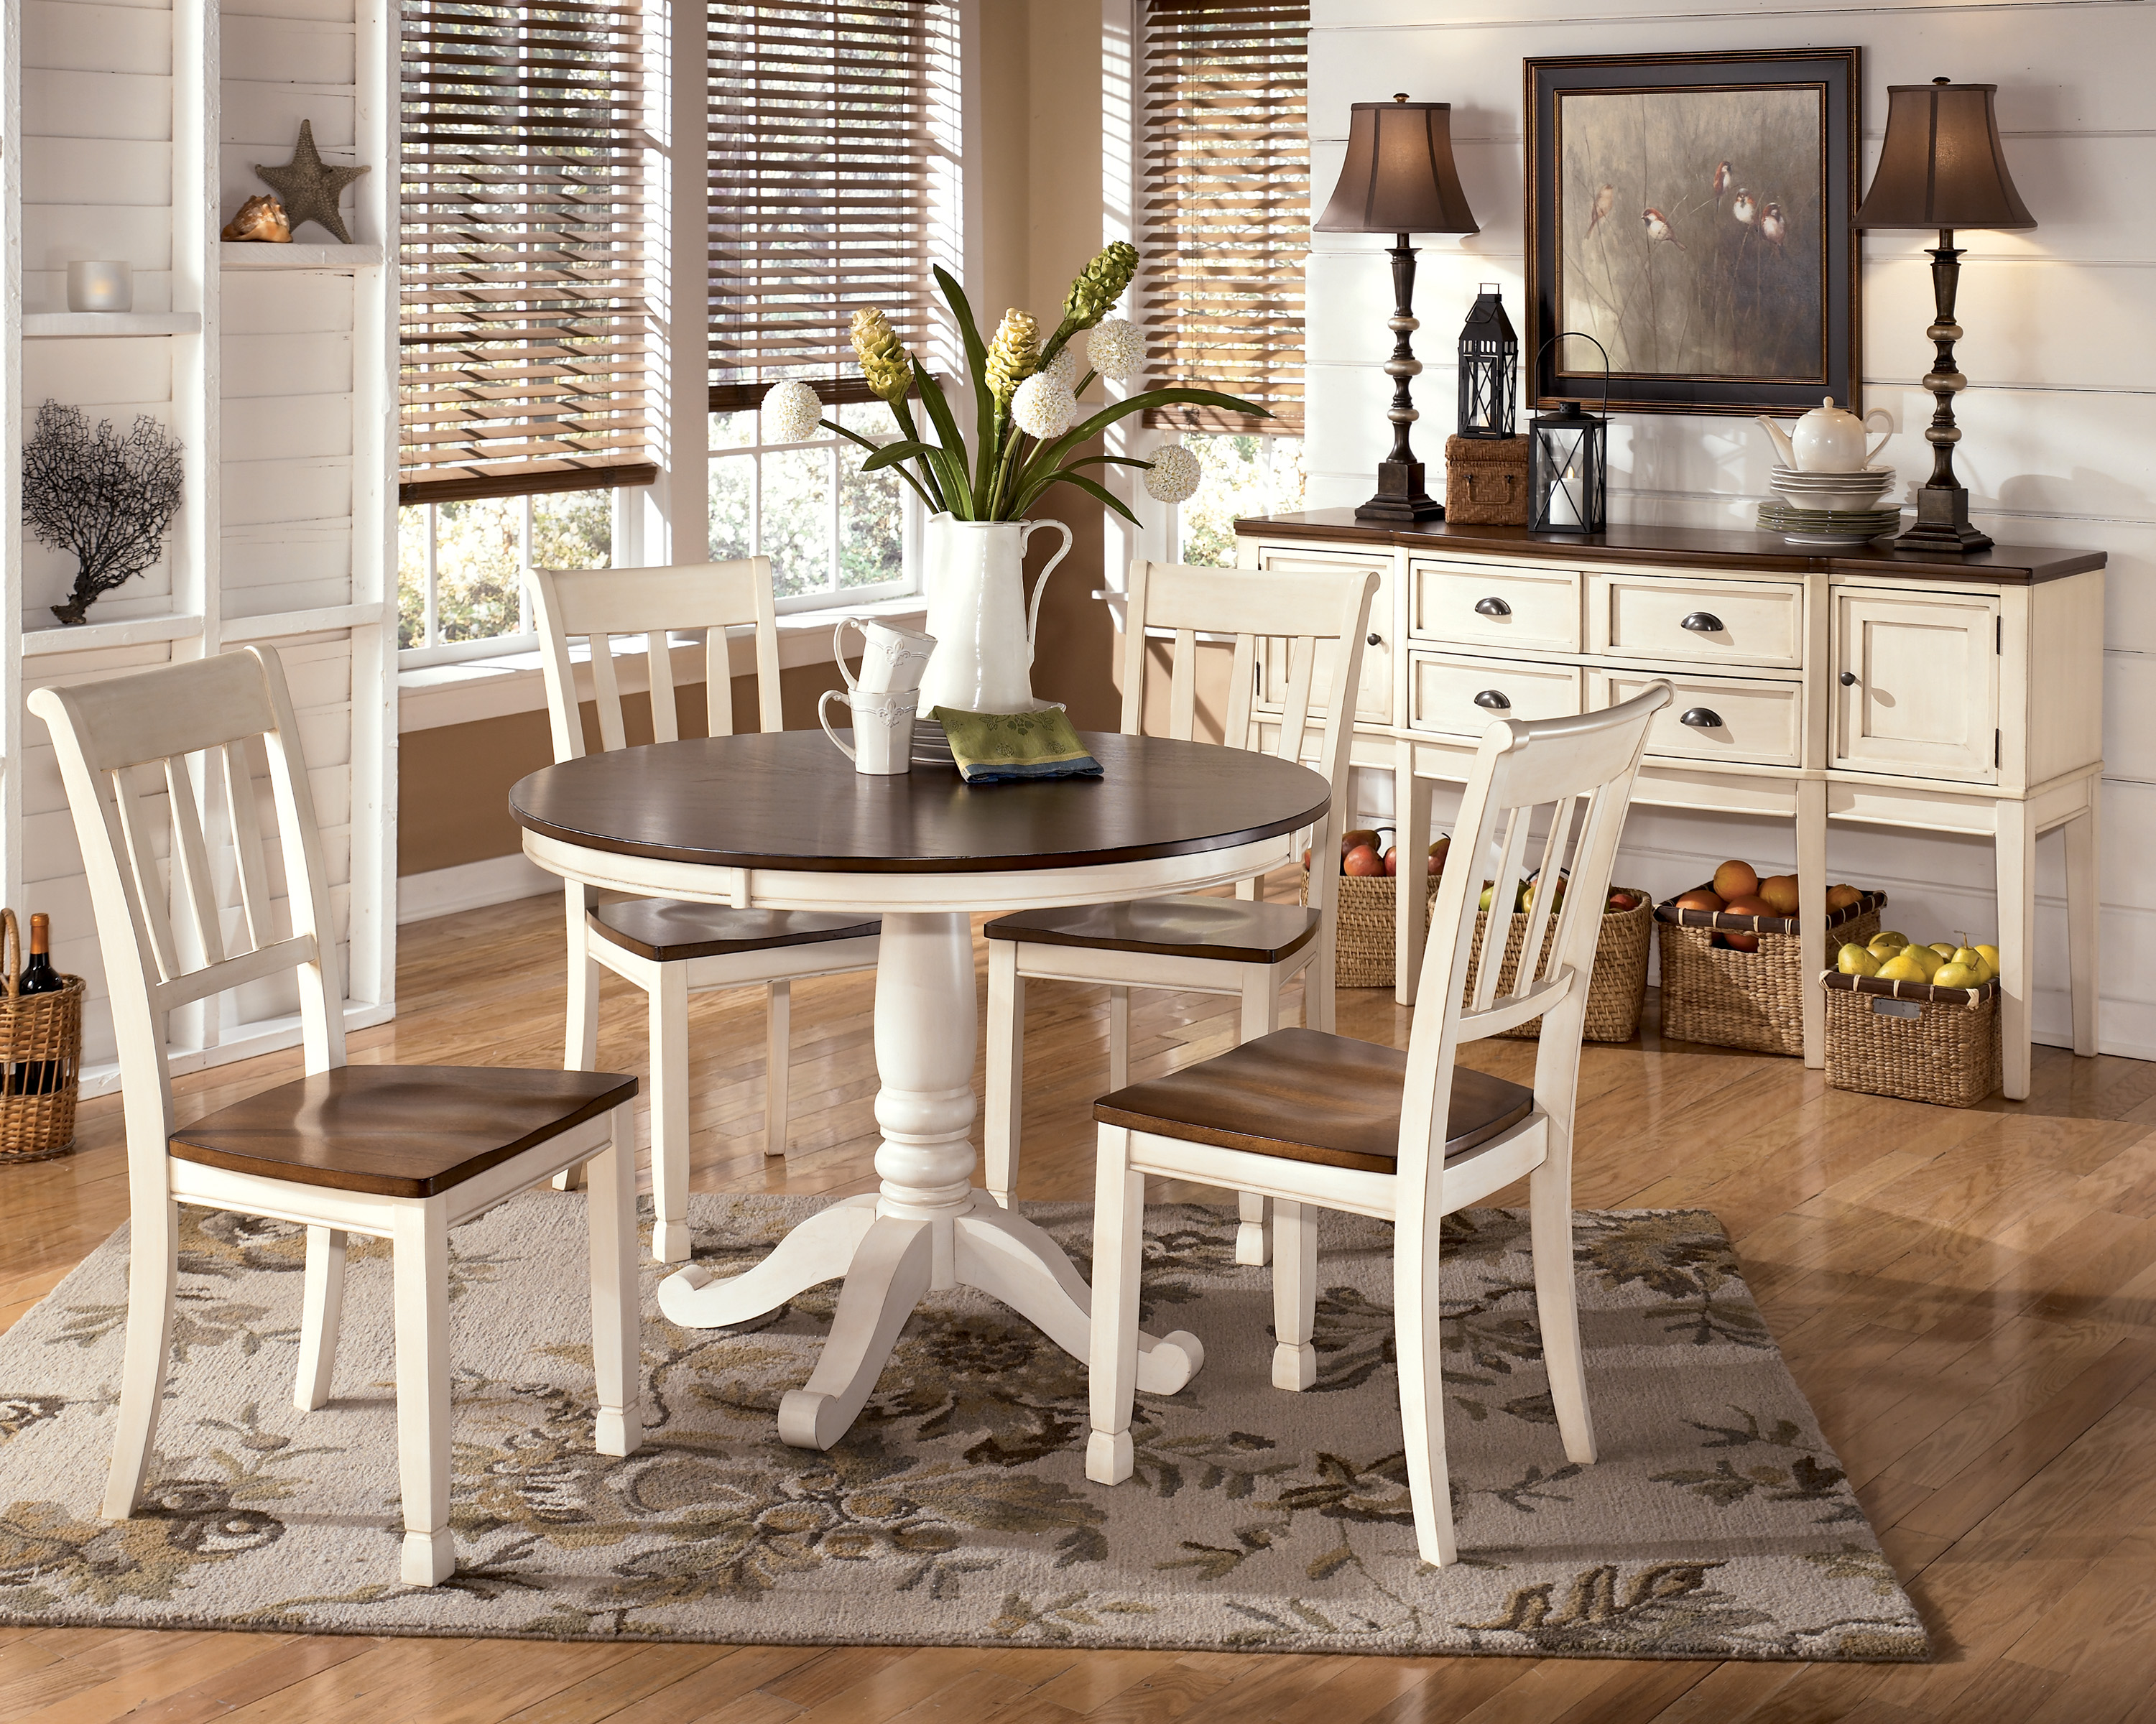 whitesburg 5 piece round dining table set in brown white kitchen table chairs Whitesburg 5 Piece Round Dining Table Set in Brown White by Dining Rooms Outlet